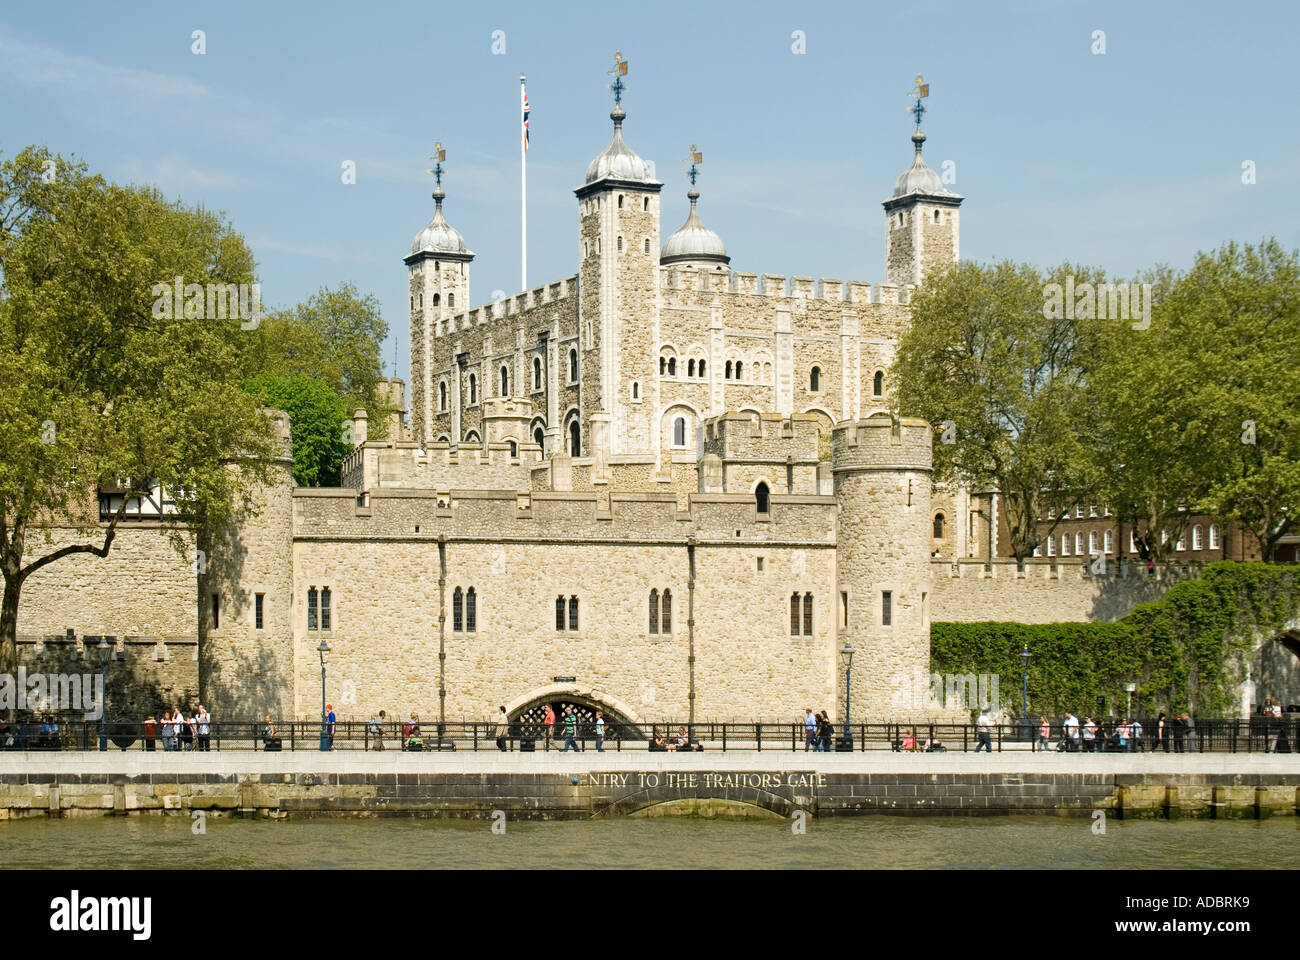 River Thames Tower of London a UNESCO World Heritage Site with close up of waterborne entrance to Traitors Gate London England UK - Stock Image